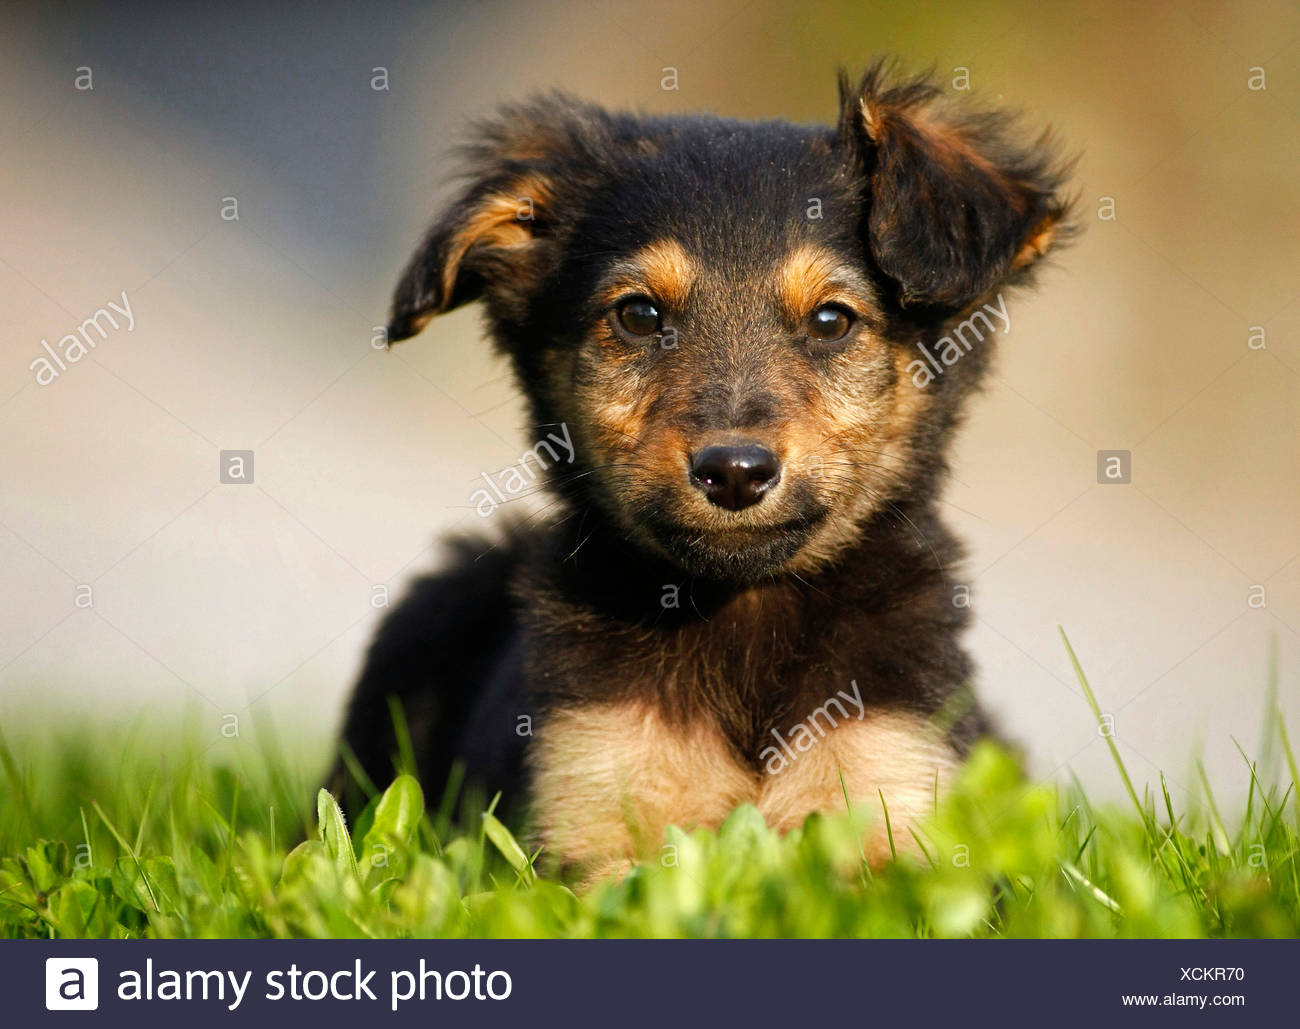 mixed breed dog (Canis lupus f. familiaris), whelpe lying in a meadow, mix breed dog of Old German Sheepdog and dachshund, Germany - Stock Image